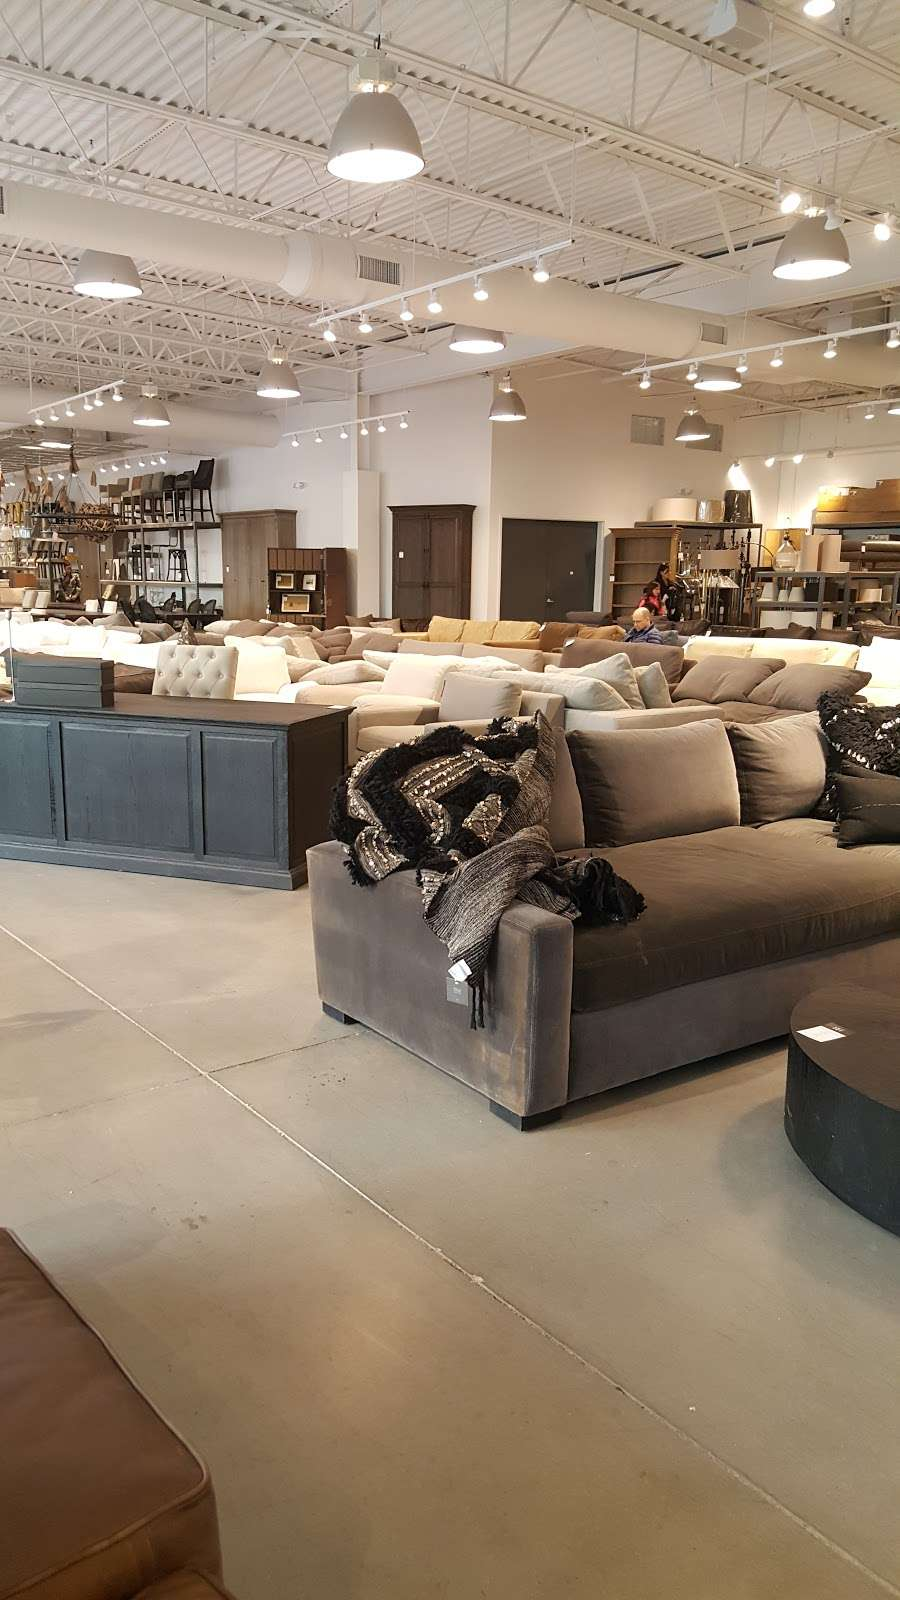 Restoration Hardware Outlet - furniture store  | Photo 4 of 10 | Address: 18 West Lightcap Rd Suite 501, Sanatoga, PA 19464, USA | Phone: (610) 970-1518